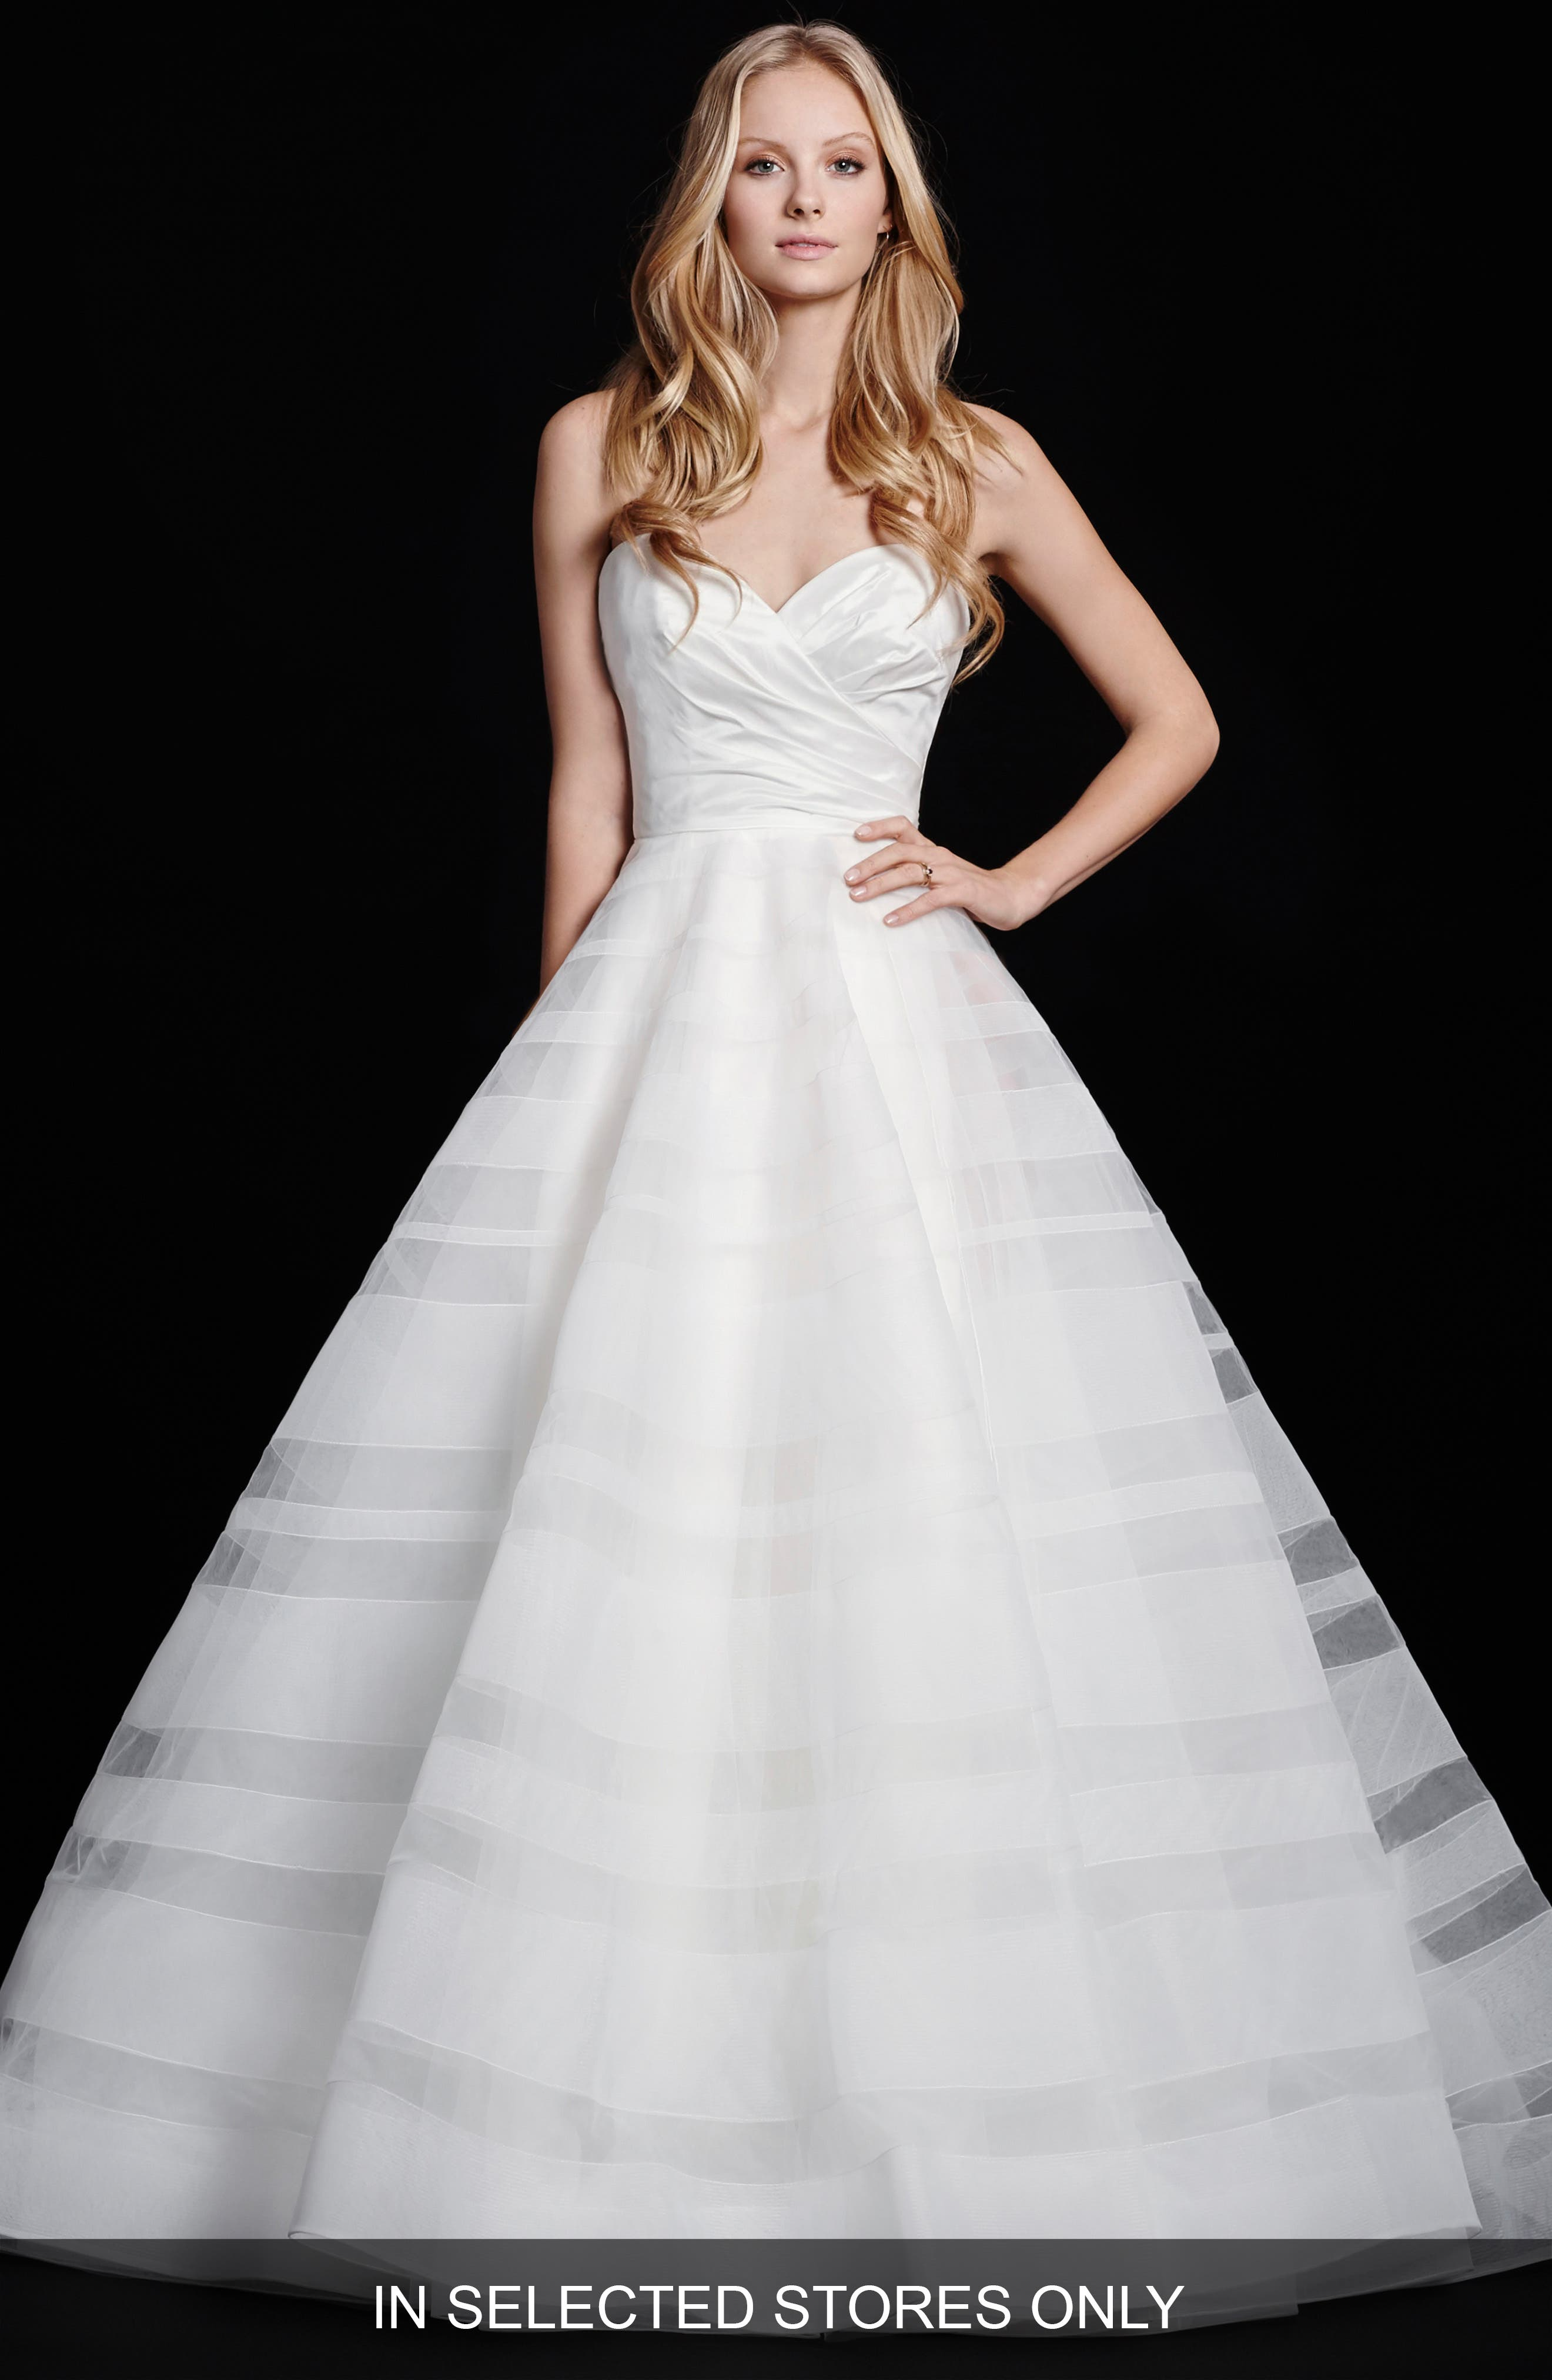 Alternate Image 1 Selected - Hayley Paige Lily Strapless Taffeta & Tulle Stripe Skirt Ballgown